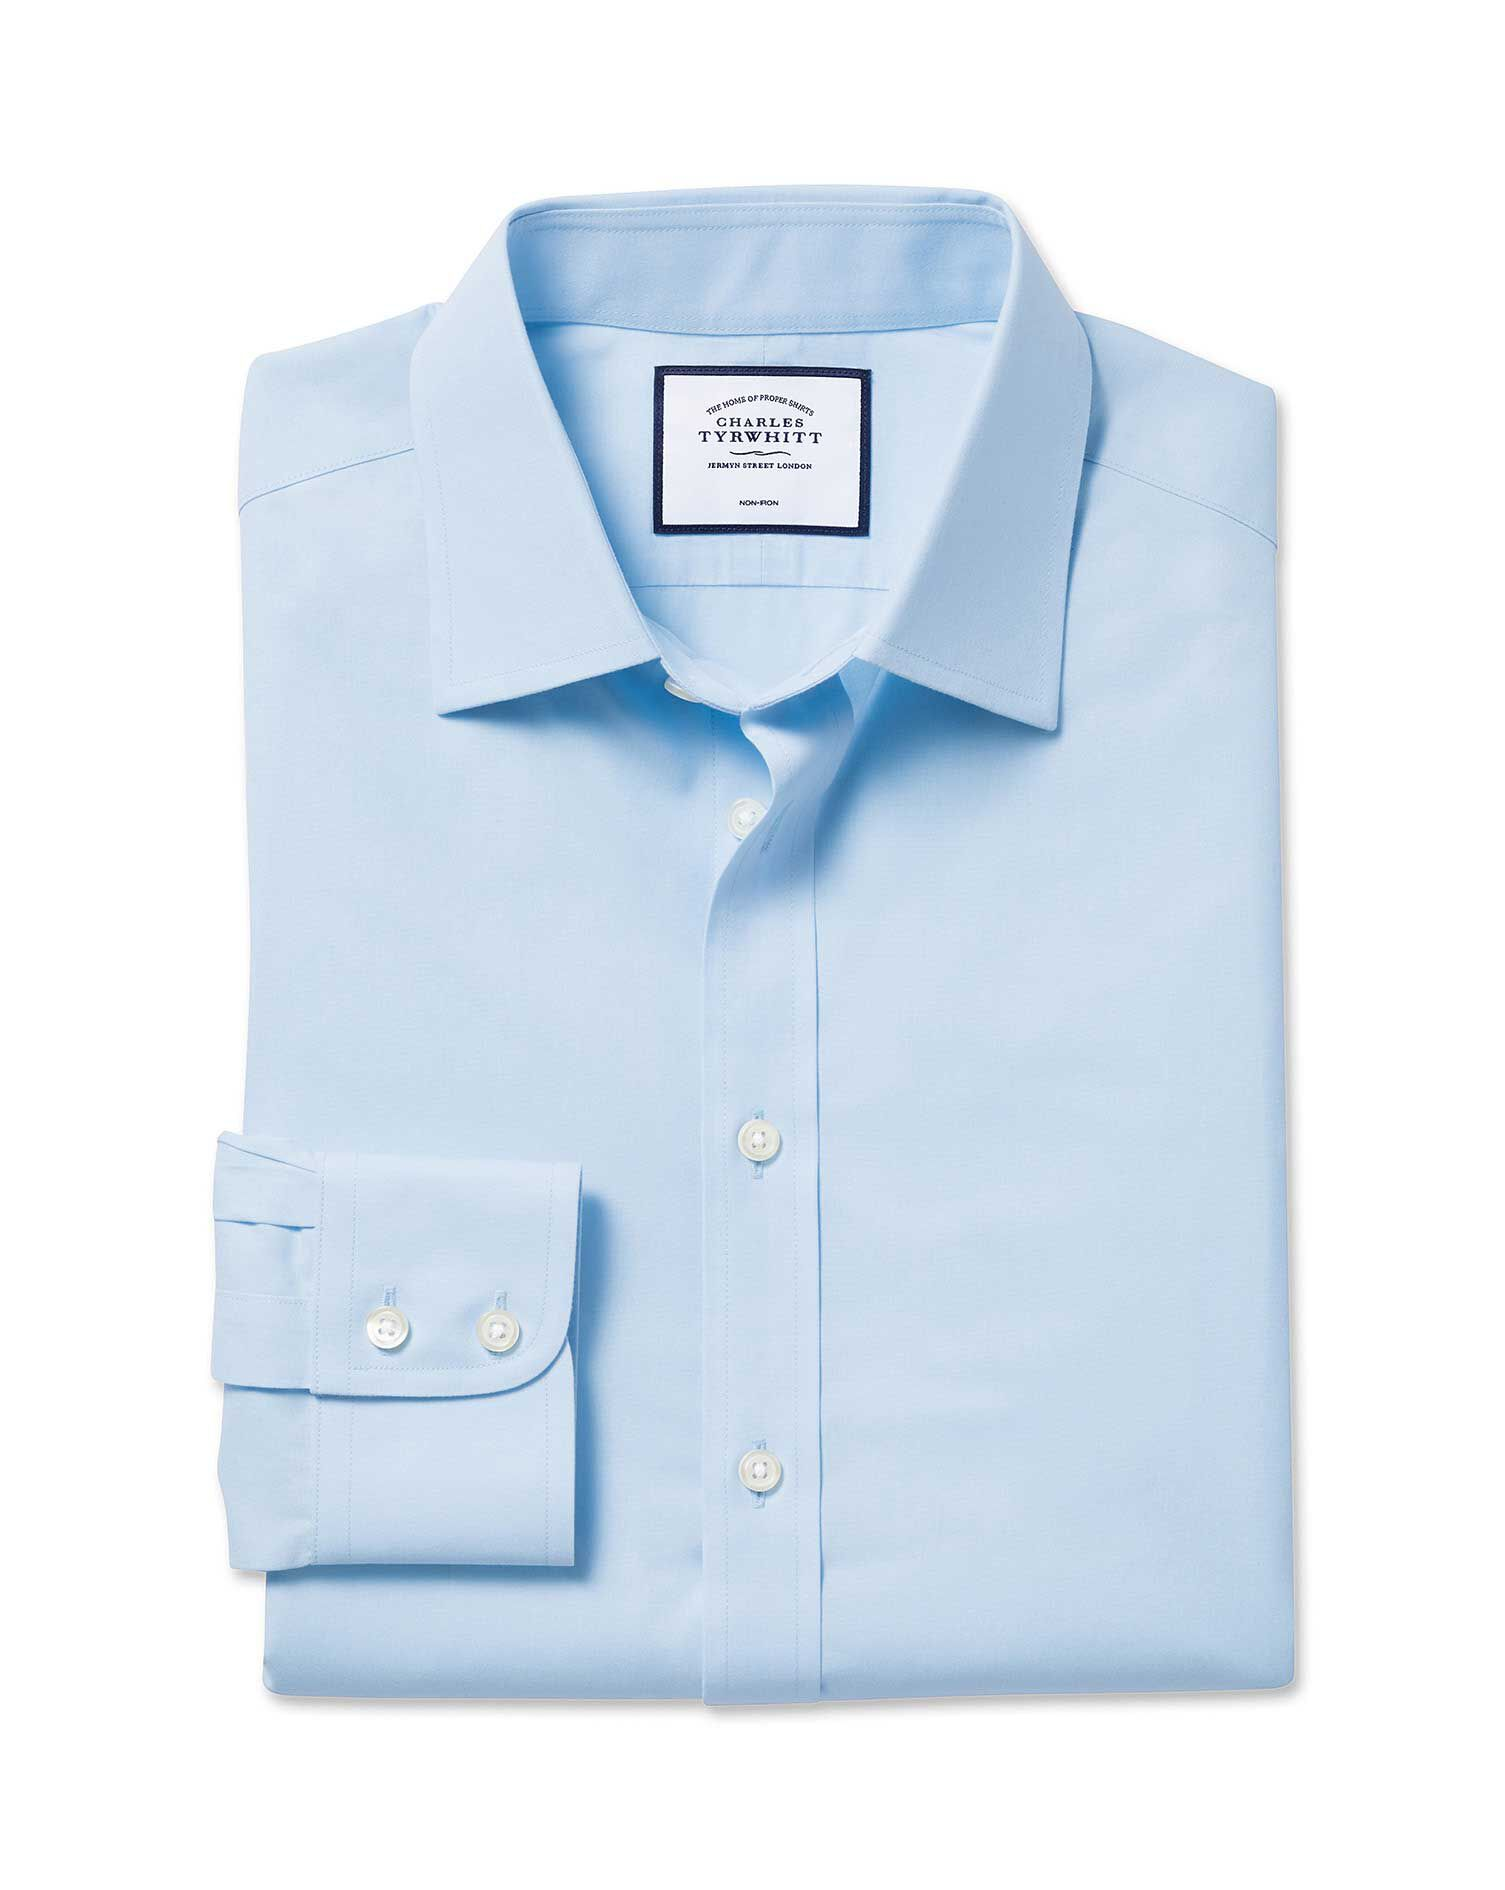 Slim Fit Non-Iron Poplin Sky Blue Cotton Formal Shirt Double Cuff Size 15.5/32 by Charles Tyrwhitt